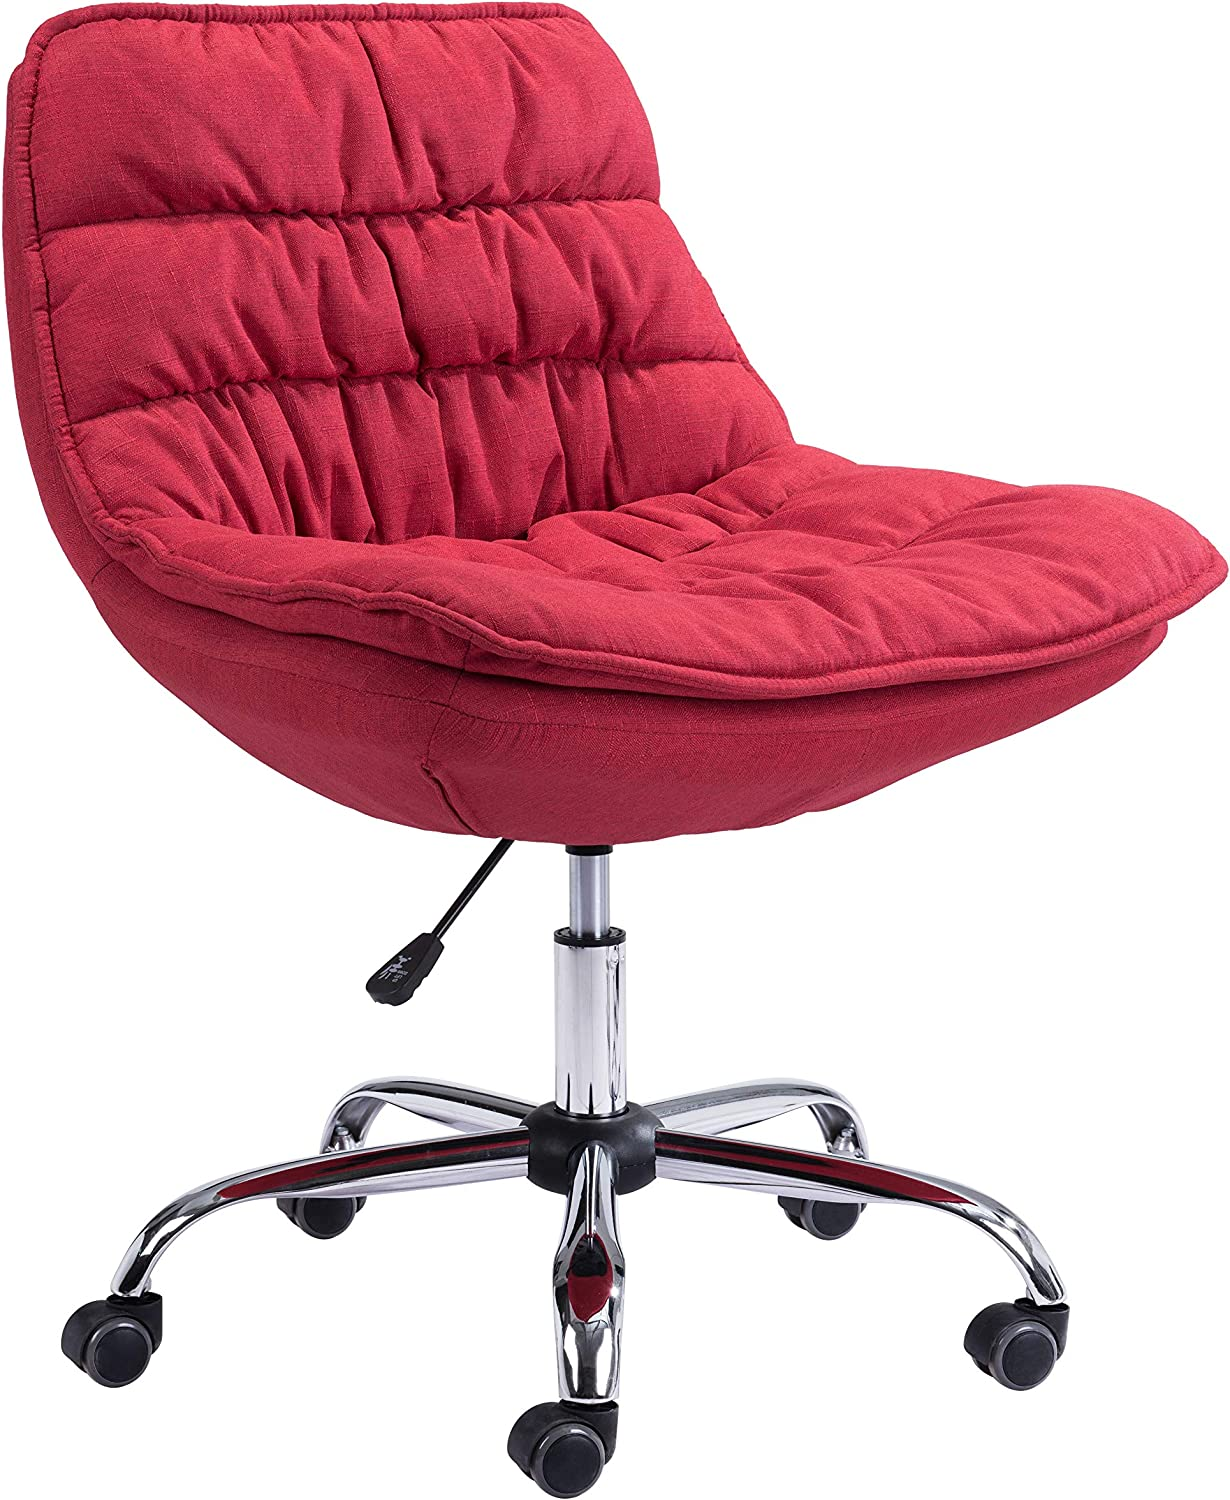 Zuo Down Office Chair, Red